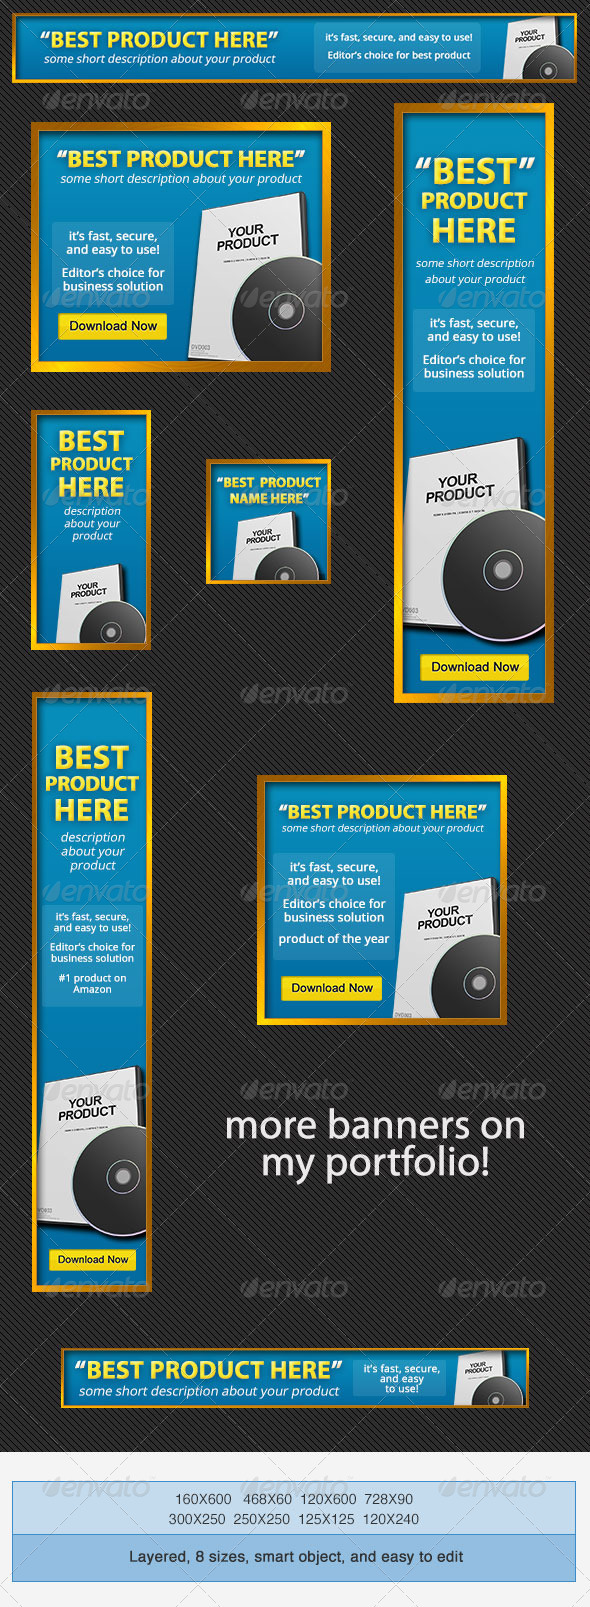 Product Banners Ad PSD Template - Banners & Ads Web Elements